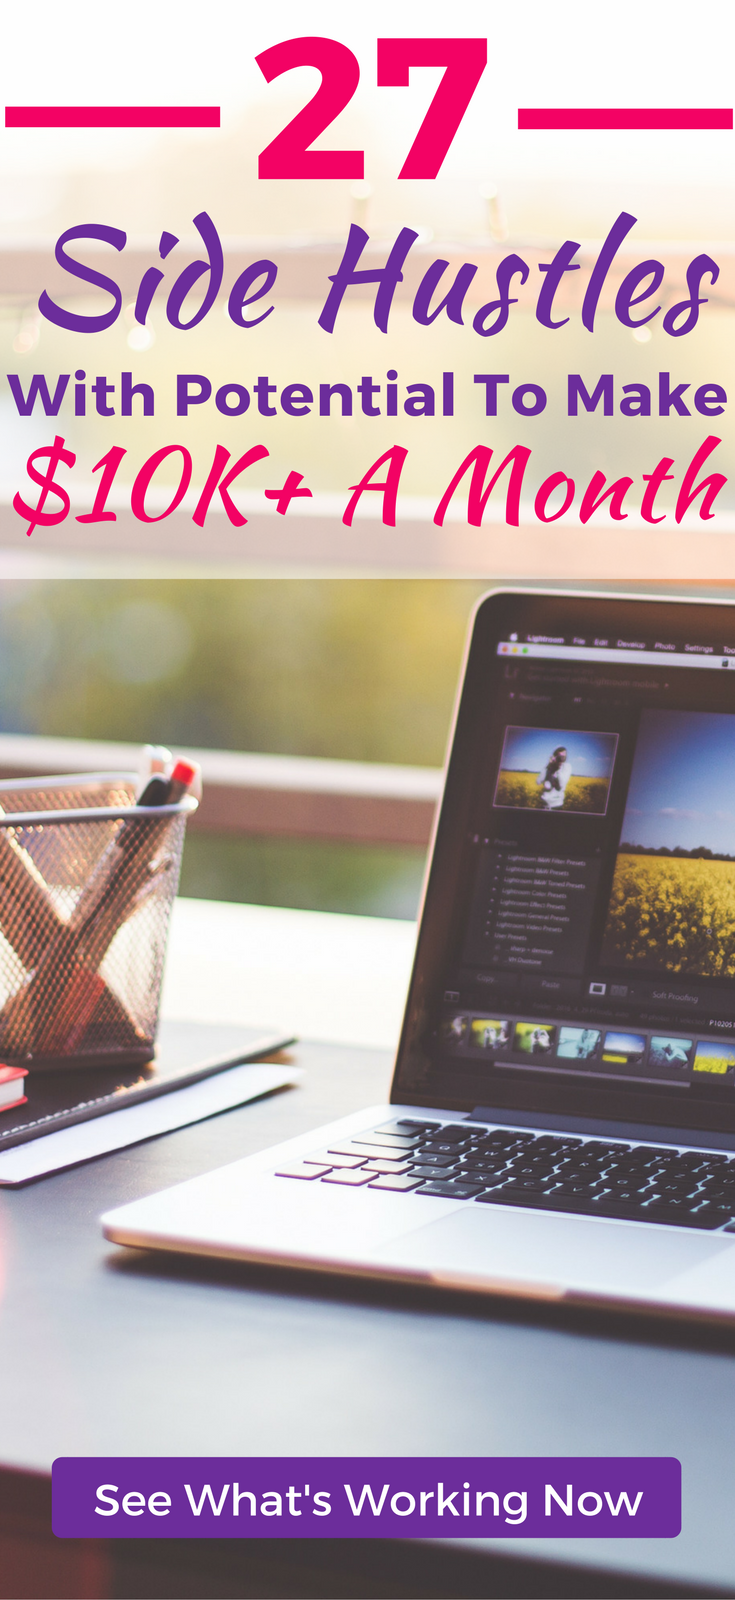 Looking to earn extra money? Here's 27 different side hustles you can start with a full-time job, that have potential to earn over $10K+ per month. Work from home on your own terms, earn passive income, and build the business you've always wanted.